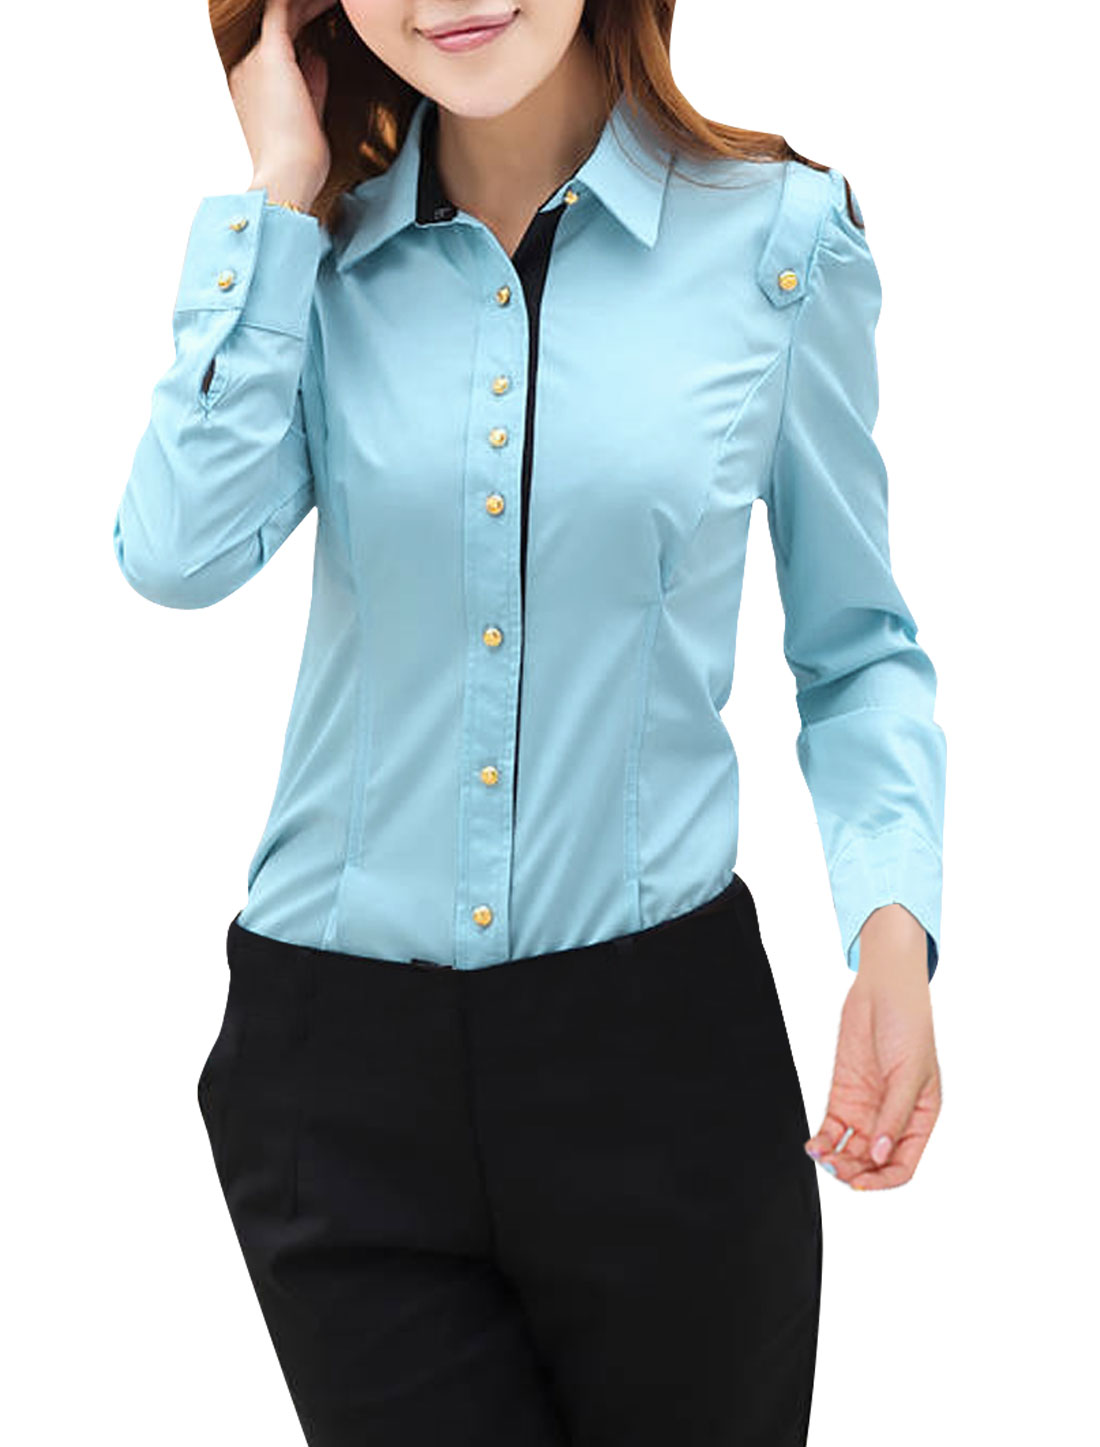 Ladies Point Collar Long Sleeve Panel Shirt Light Blue XS